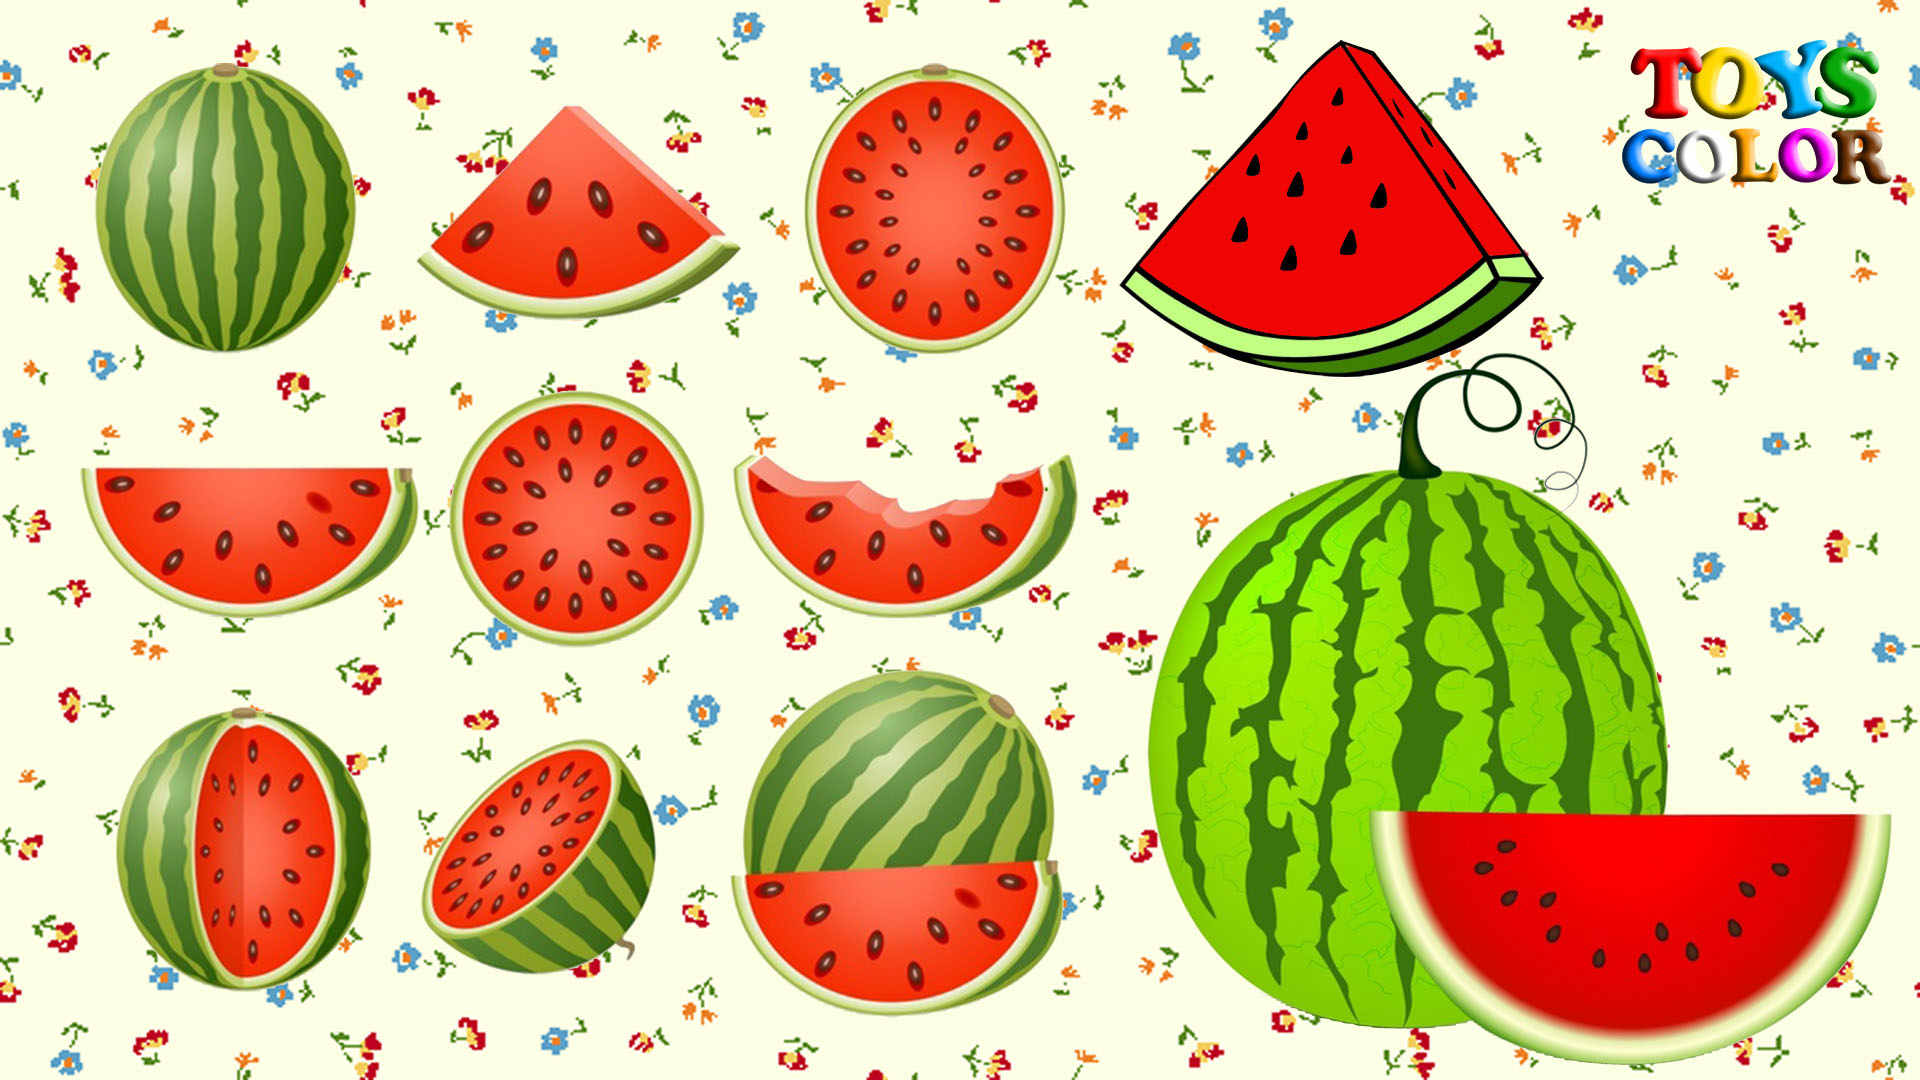 Como Dibujar Sandia How to Draw Watermelon Coloring For Kids Dibujos Para Niños Learn Colors Toys Color